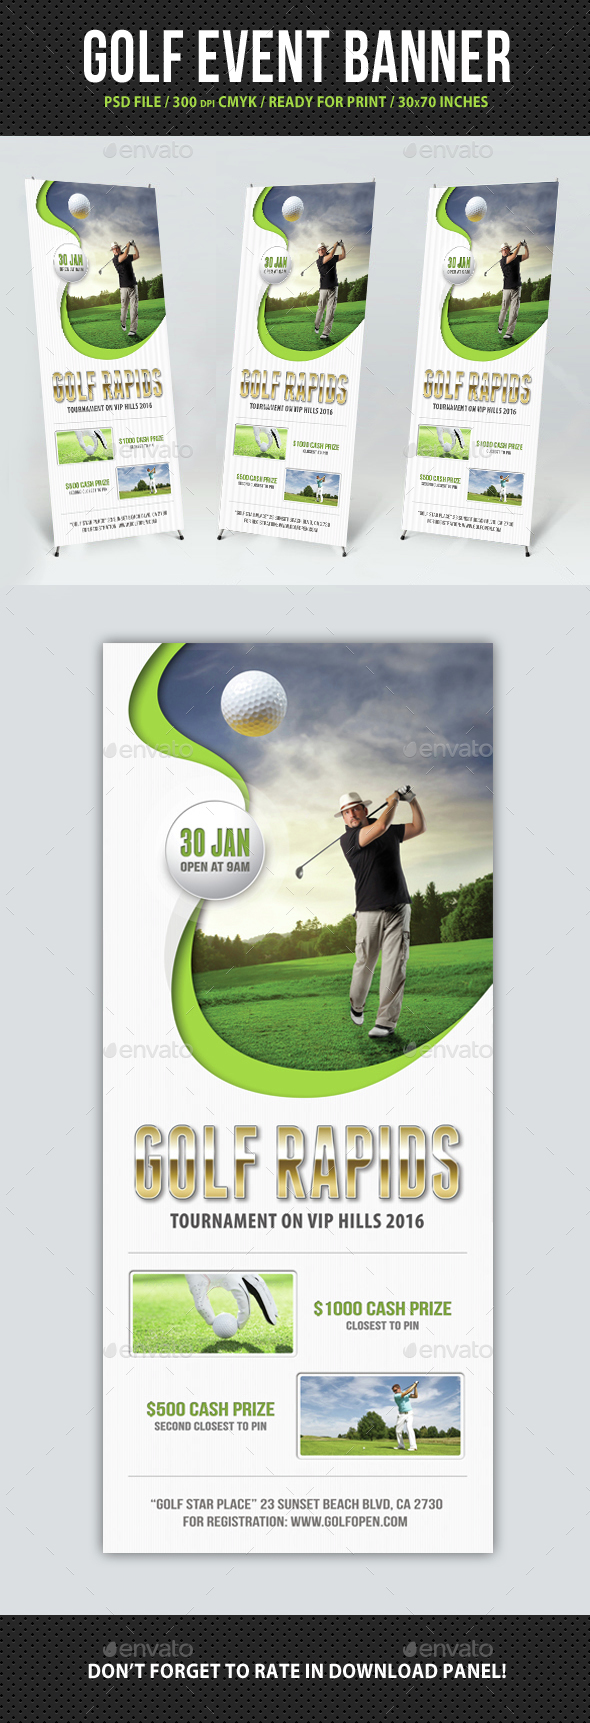 Golf Event Banner Template 05 - Signage Print Templates